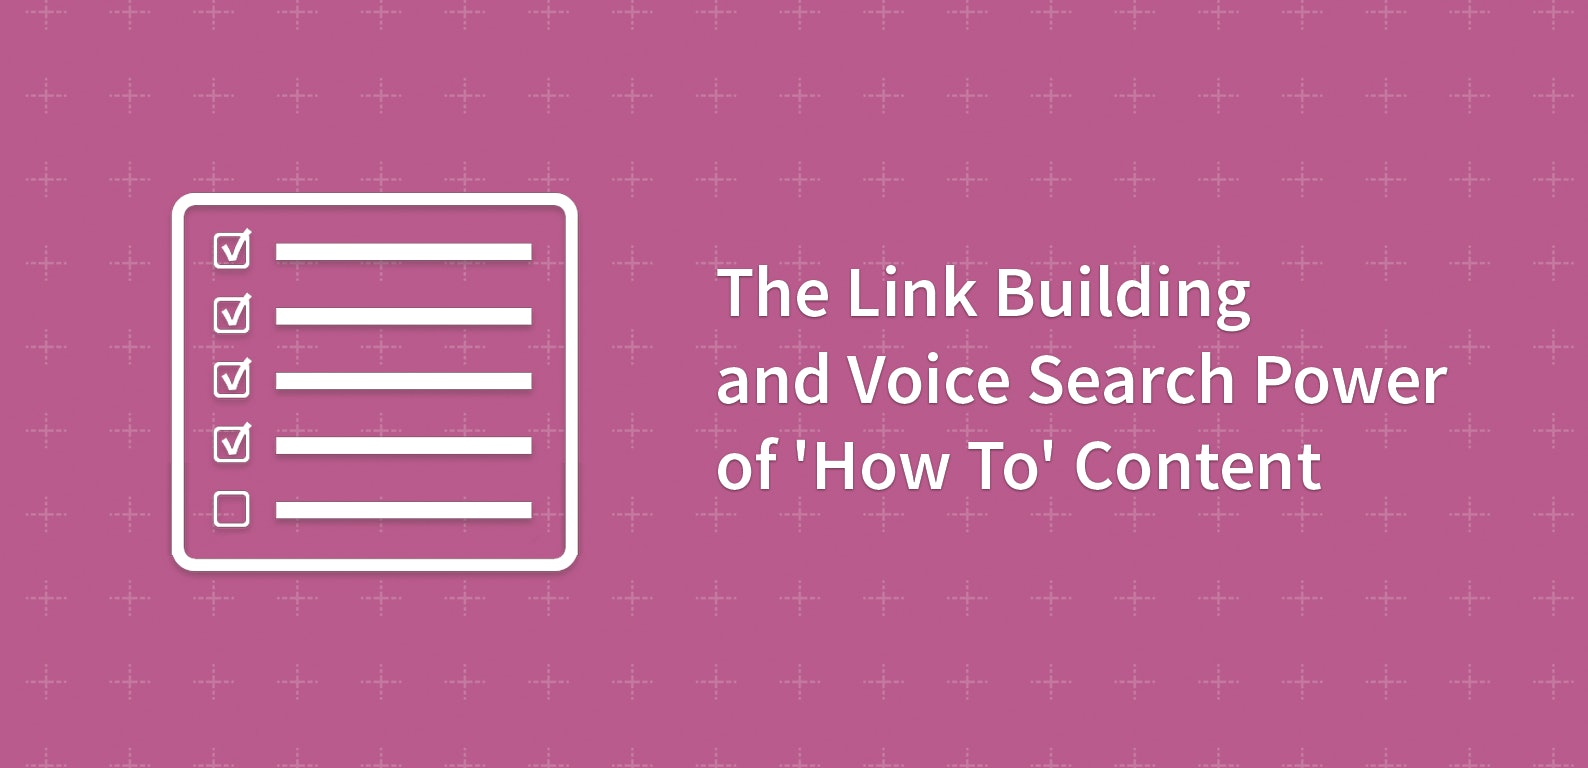 The Link Building and Voice Search Power of 'How To' Content